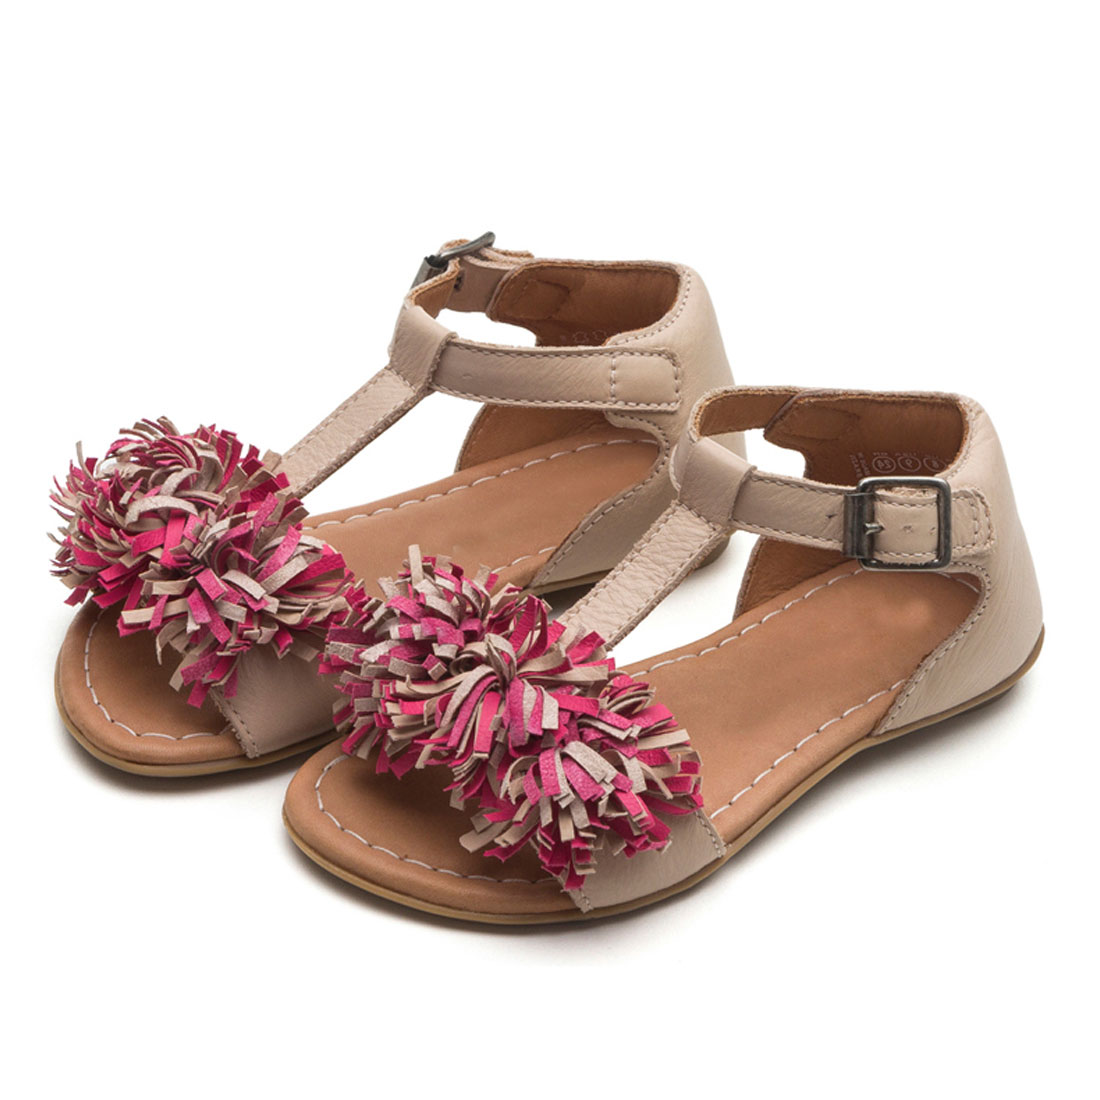 China Wholesale Leather Tassel Flower Kids Baby Girl Summer Sandal Shoes KD0114